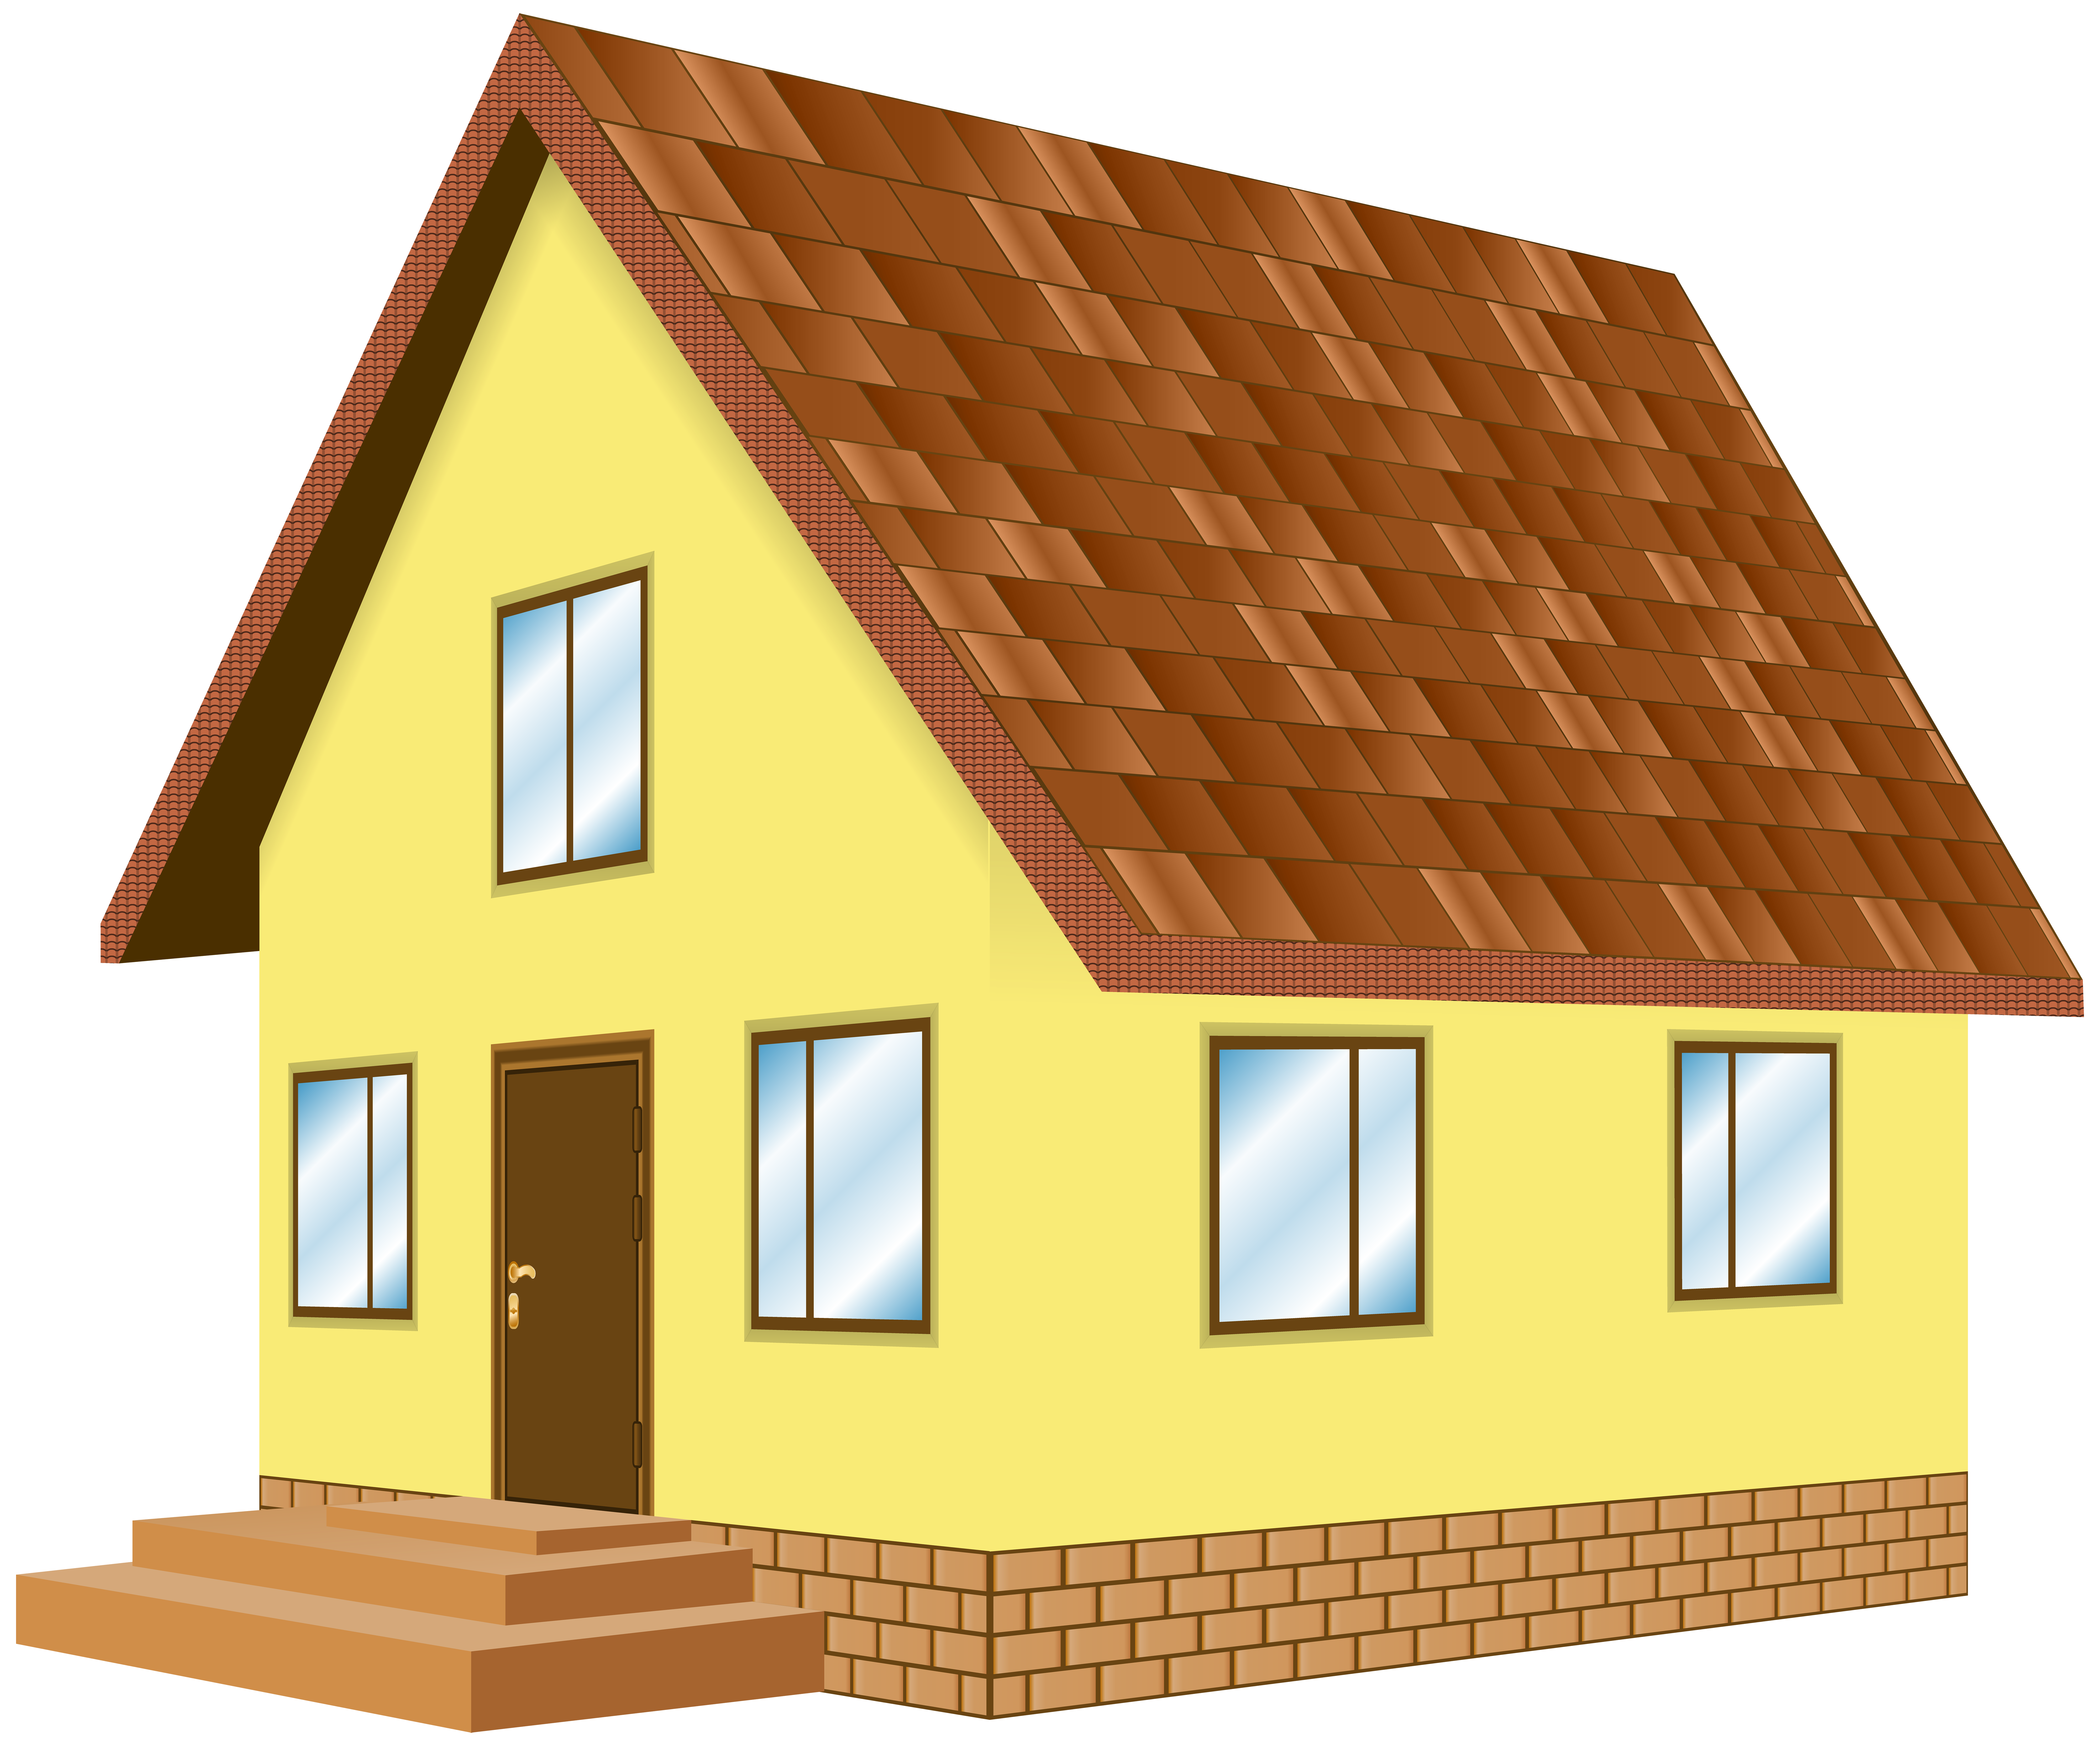 Home cliparts yellow png library House Yellow PNG Clip Art - Best WEB Clipart png library